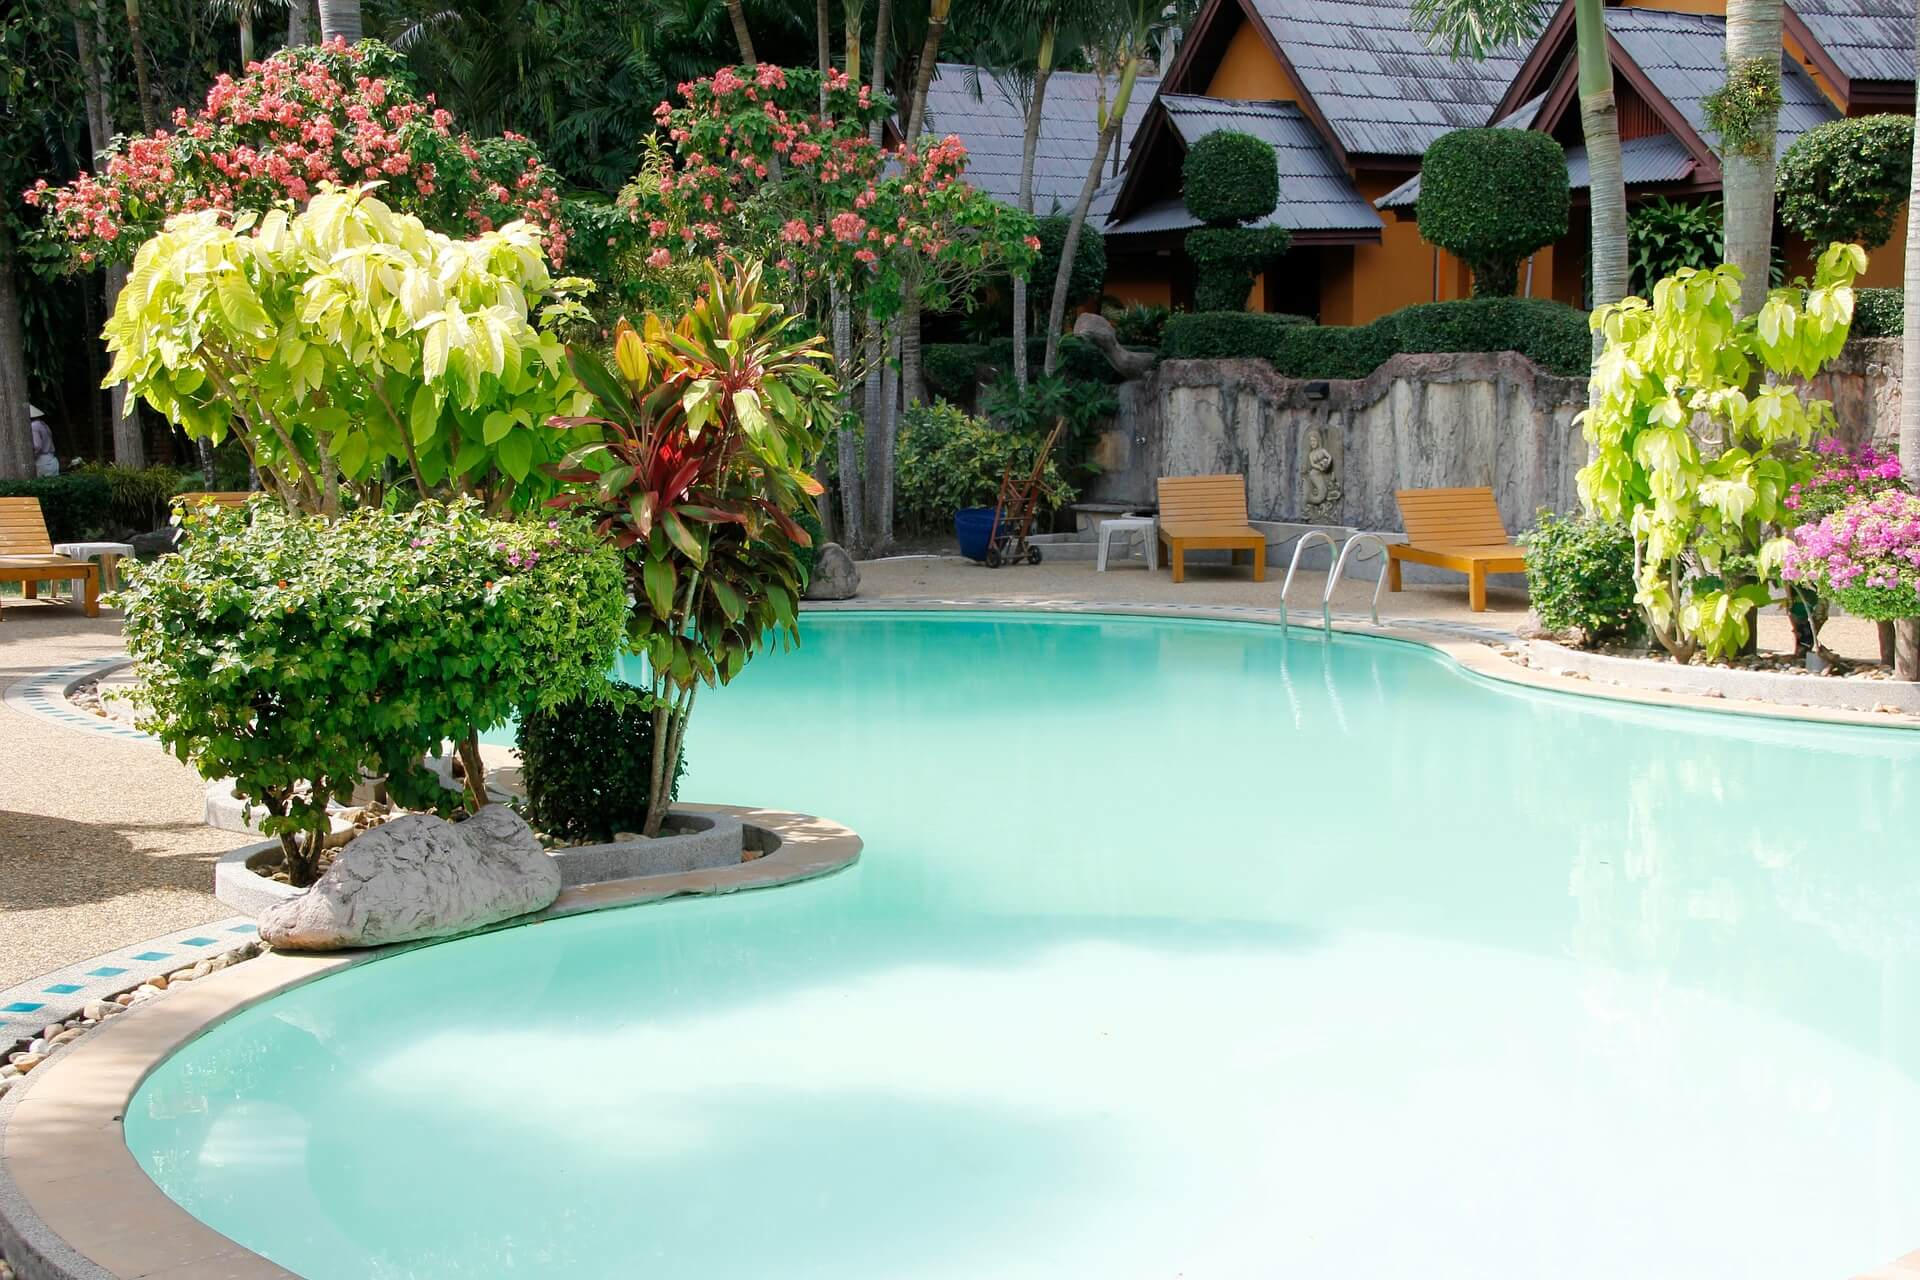 Backyard pools and their benefit